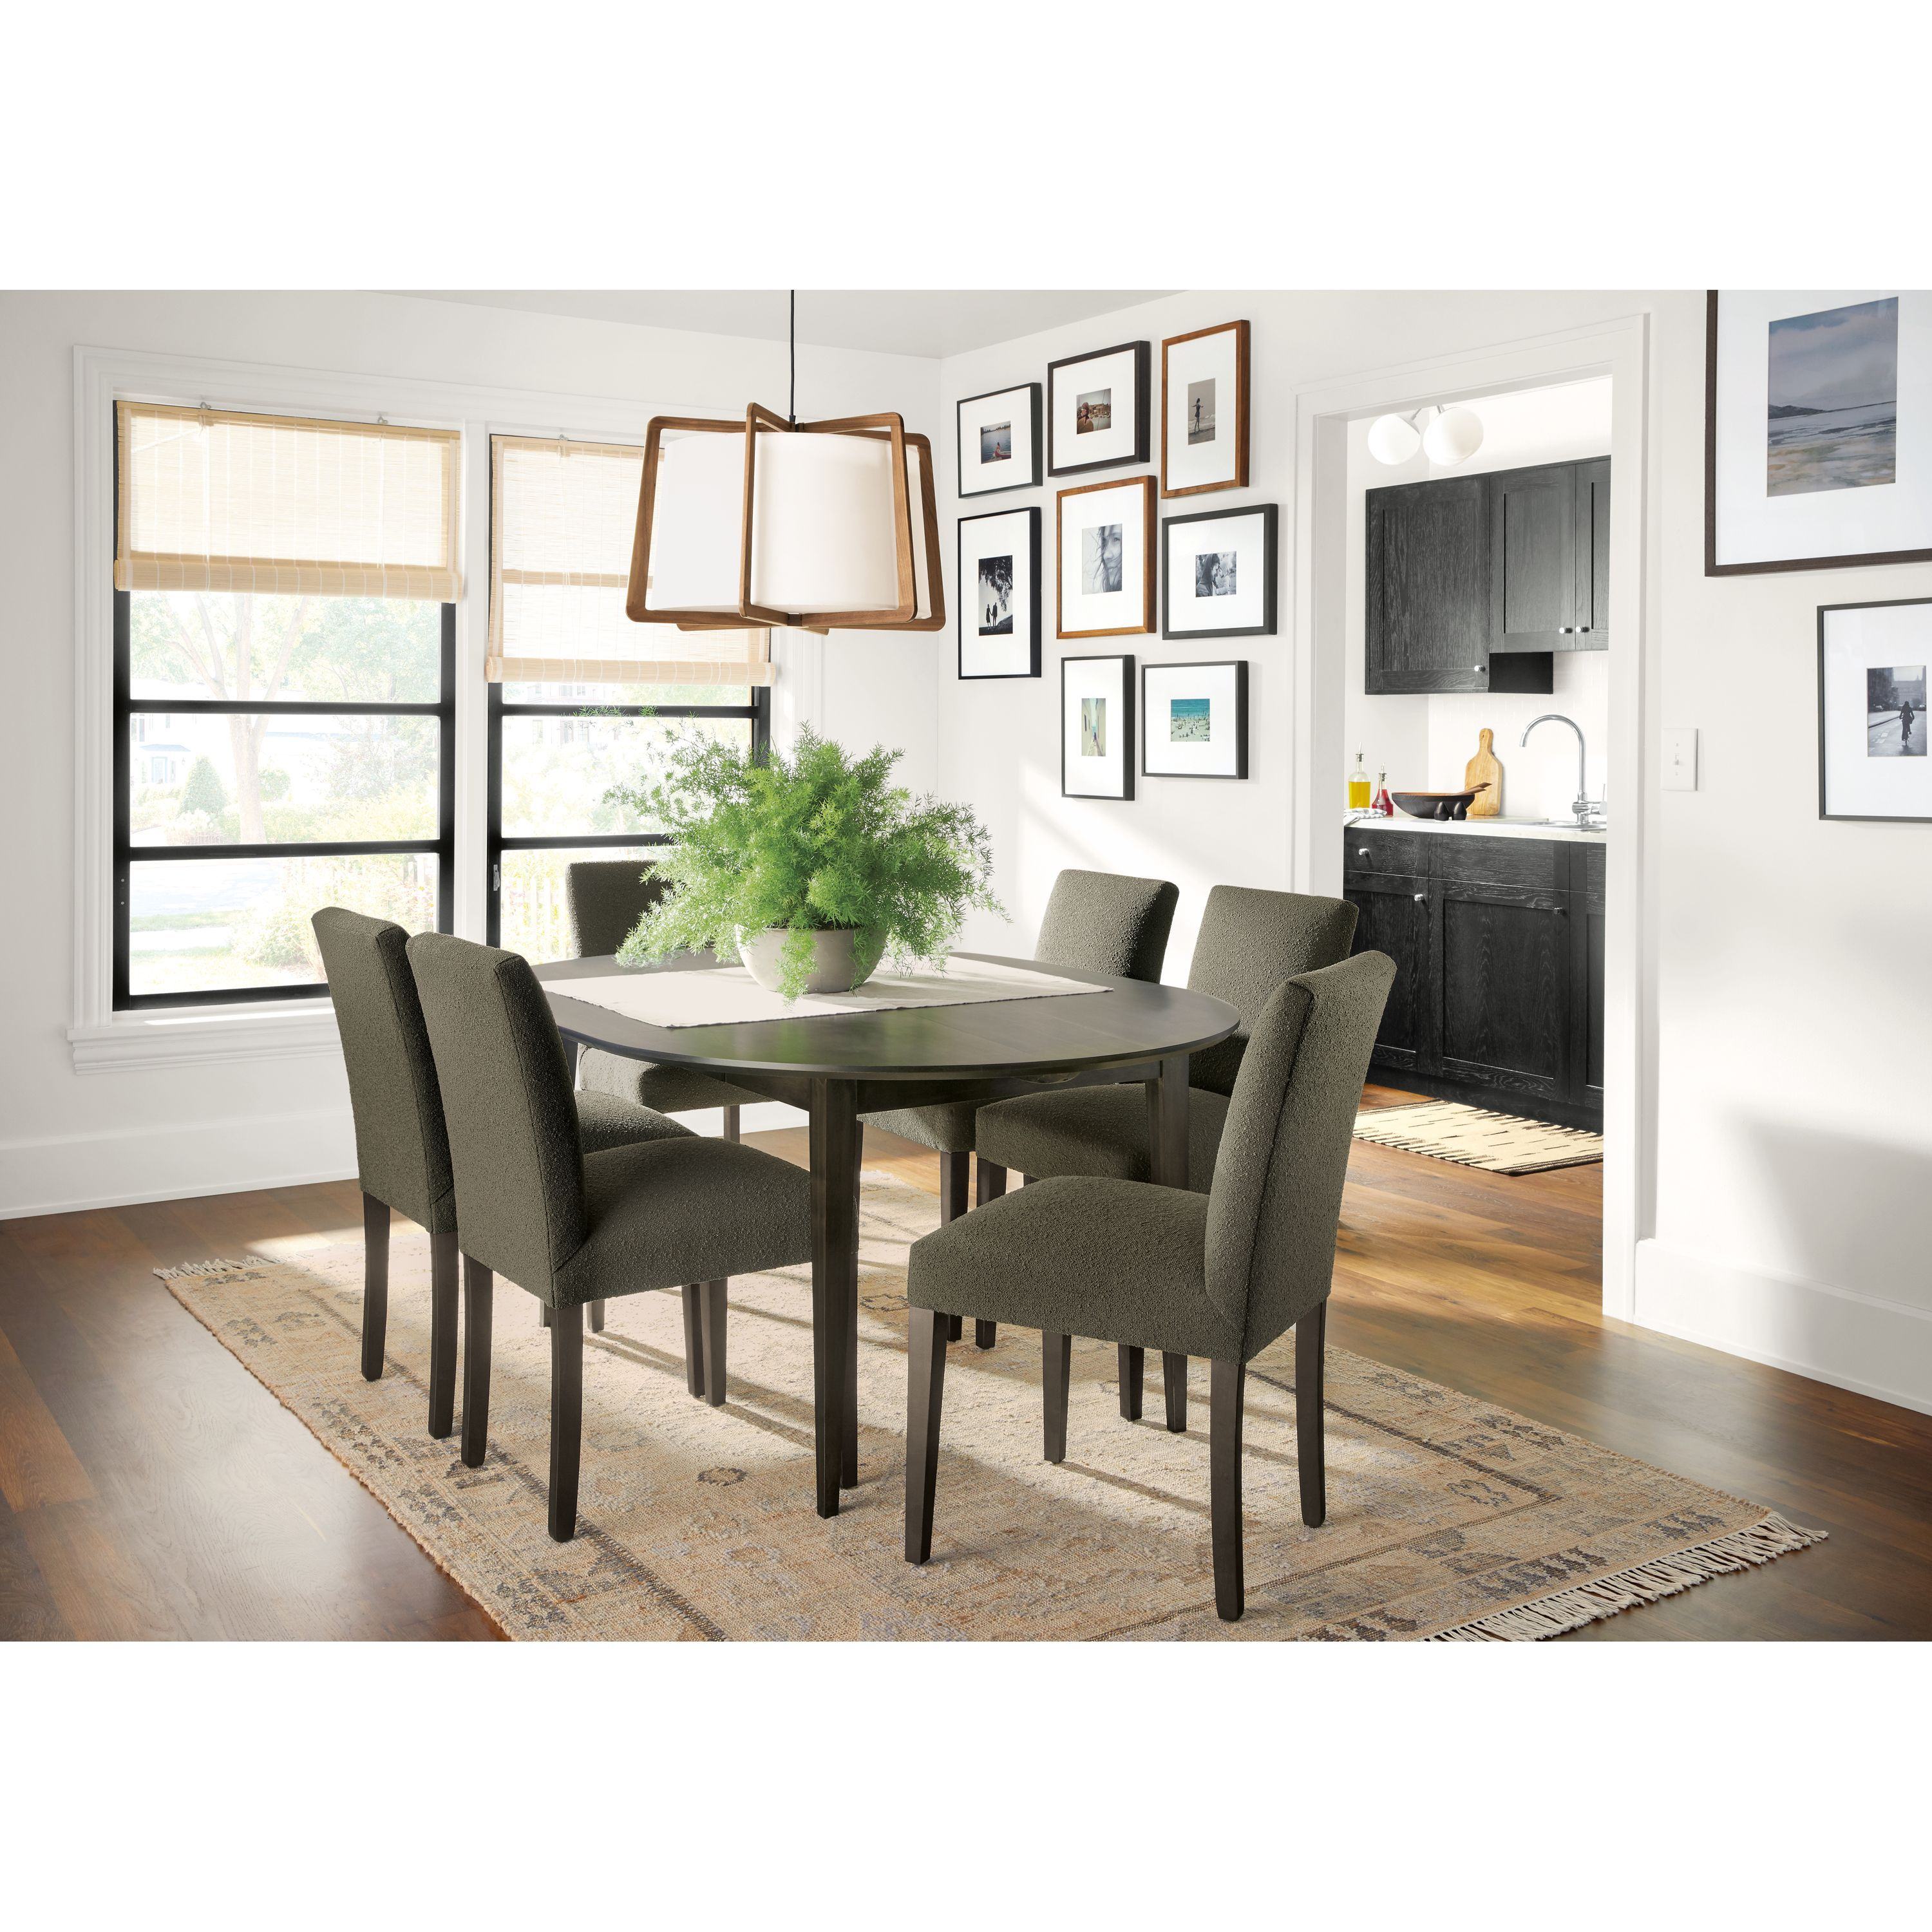 Room Board Adams Round Extension Tables In 2020 Side Chairs